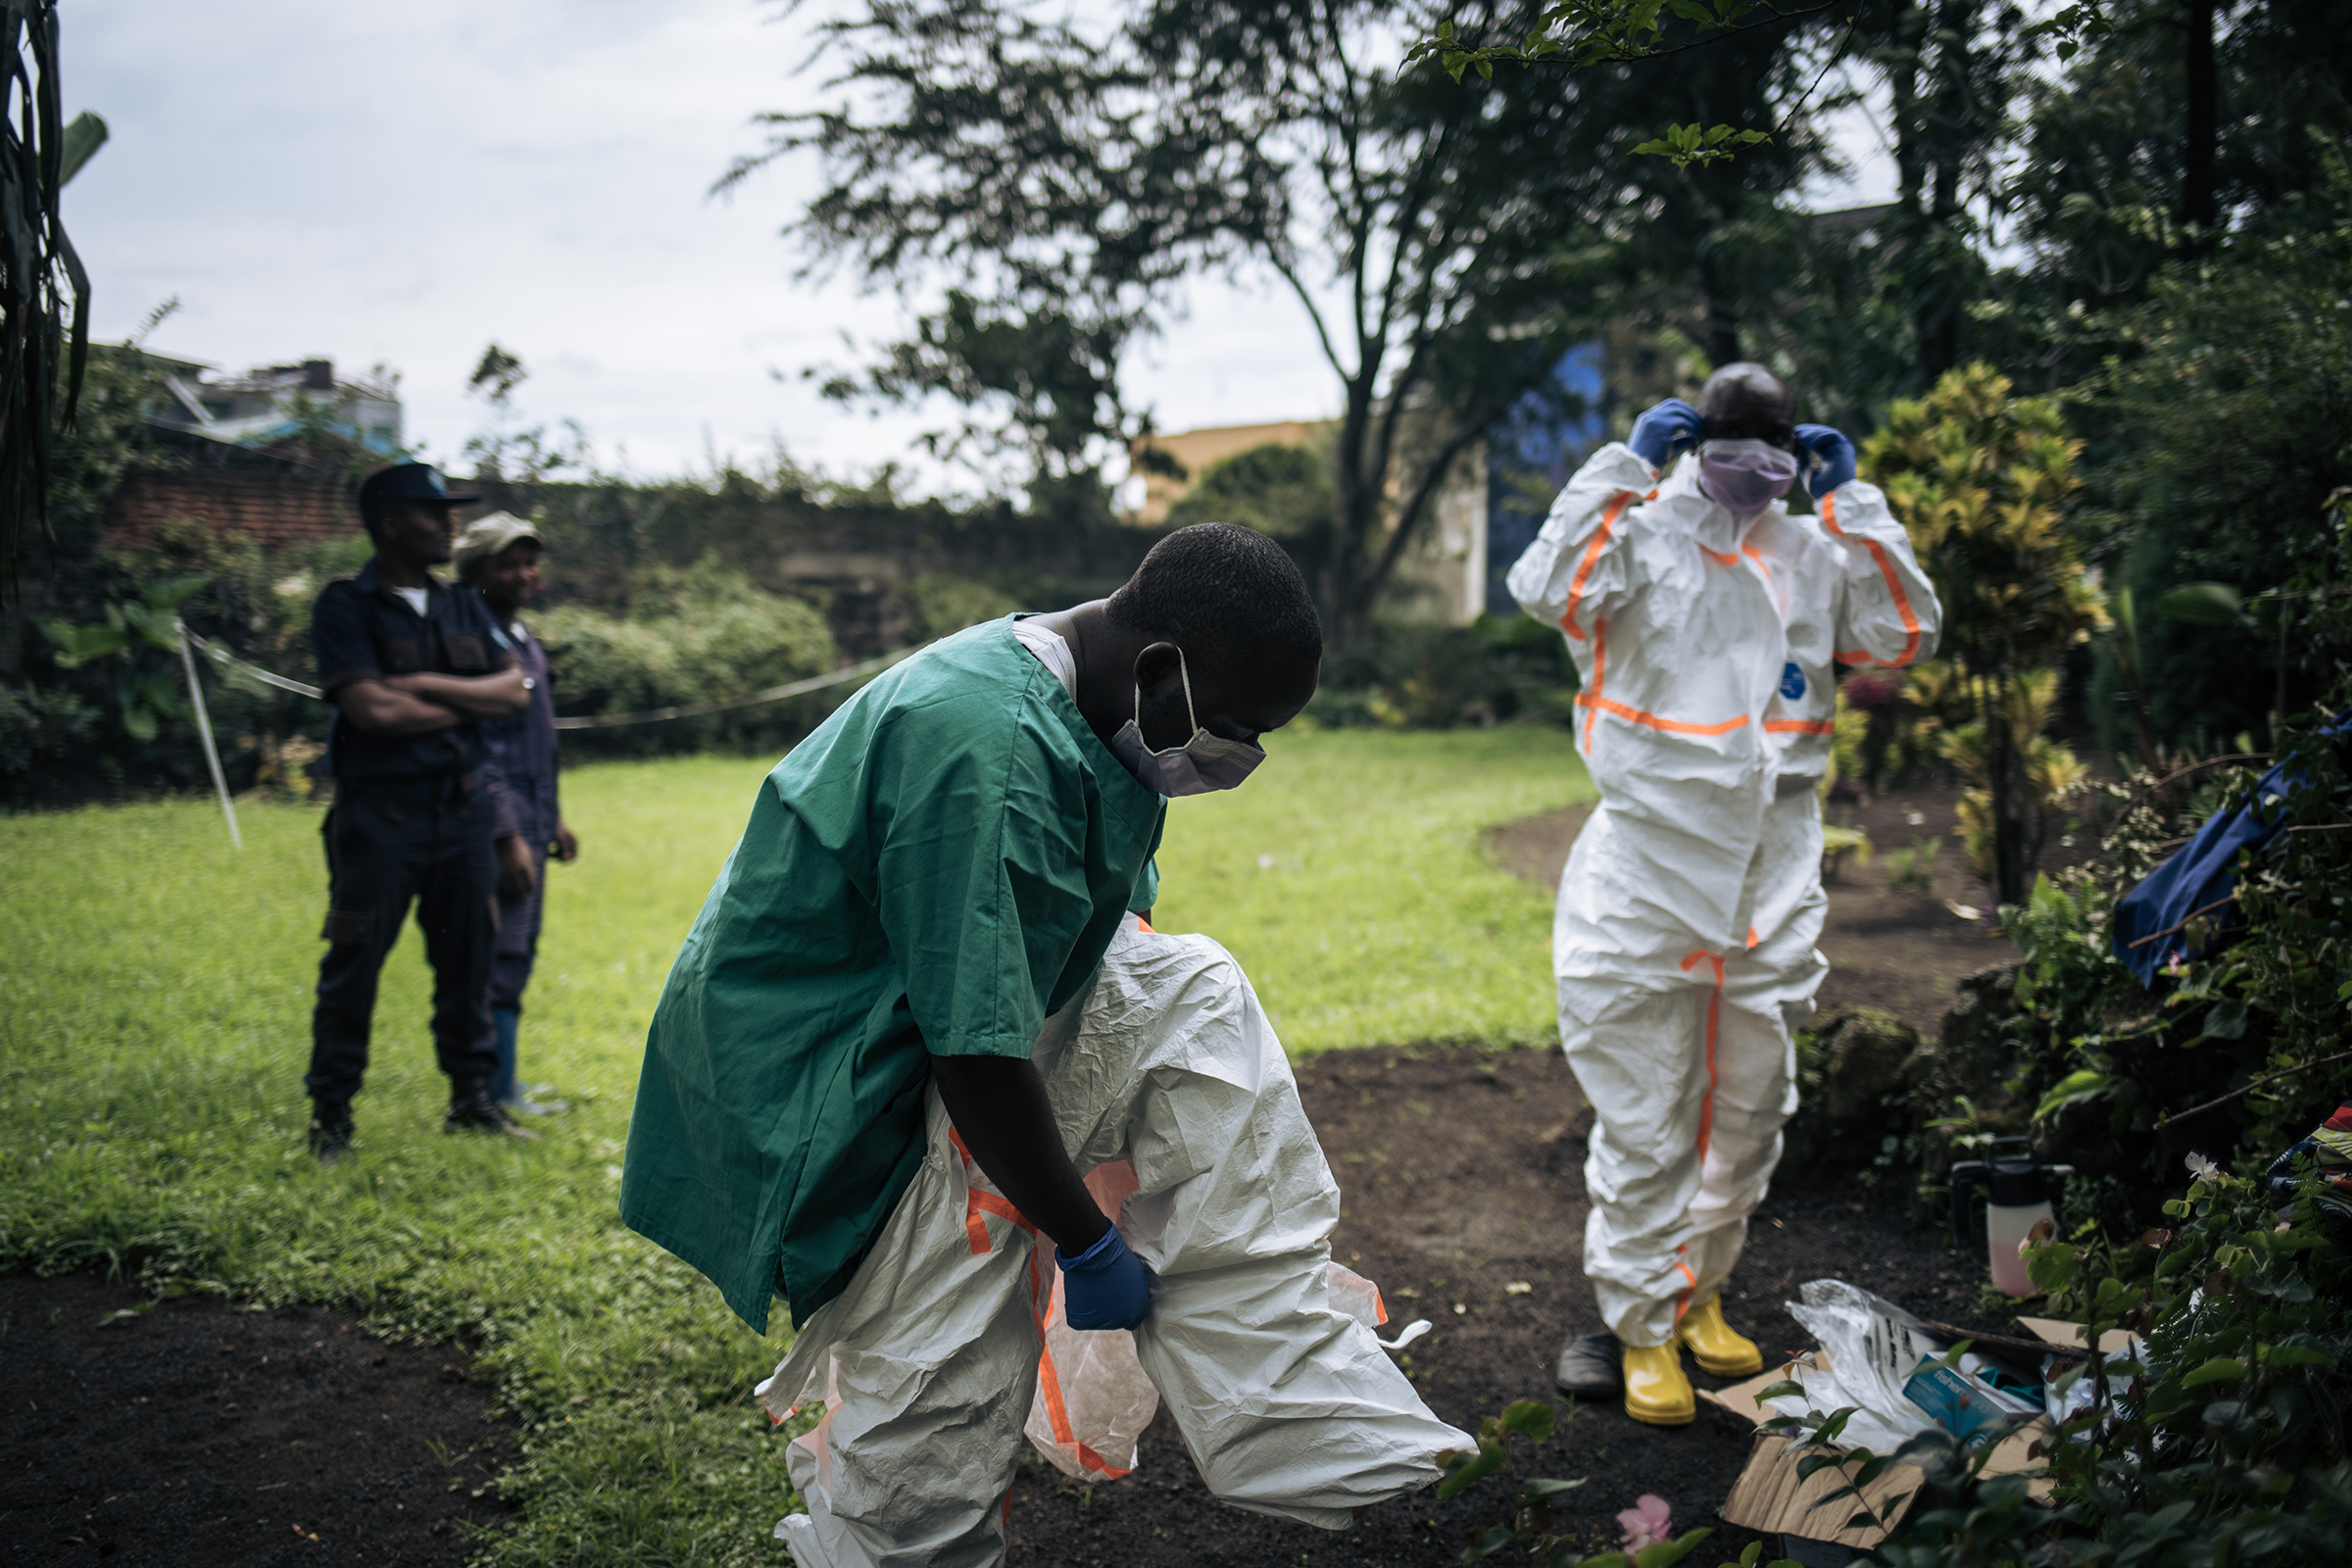 Two staff members of the Congolese Ministry of Health wear PPE to perform a COVID-19 in Goma, Democratic Republic of Congo, on March 31, 2020.